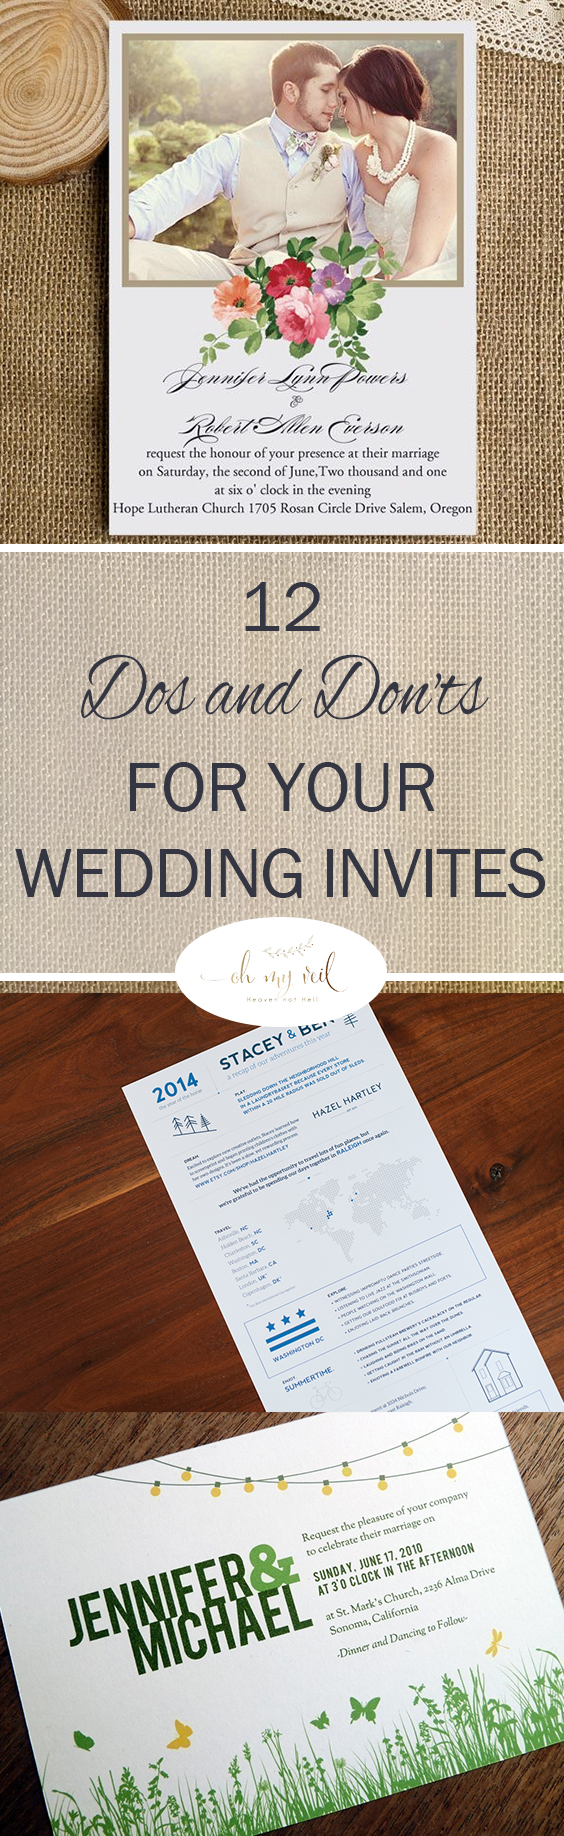 Wedding Invite Tips, Wedding Invite TIps and Tricks, Wedding Invite Ideas, Weddings, Dream Weddings, Weddings 101, Wedding Invitations, Beautiful Wedding Tips and Tricks, Popular Pin.